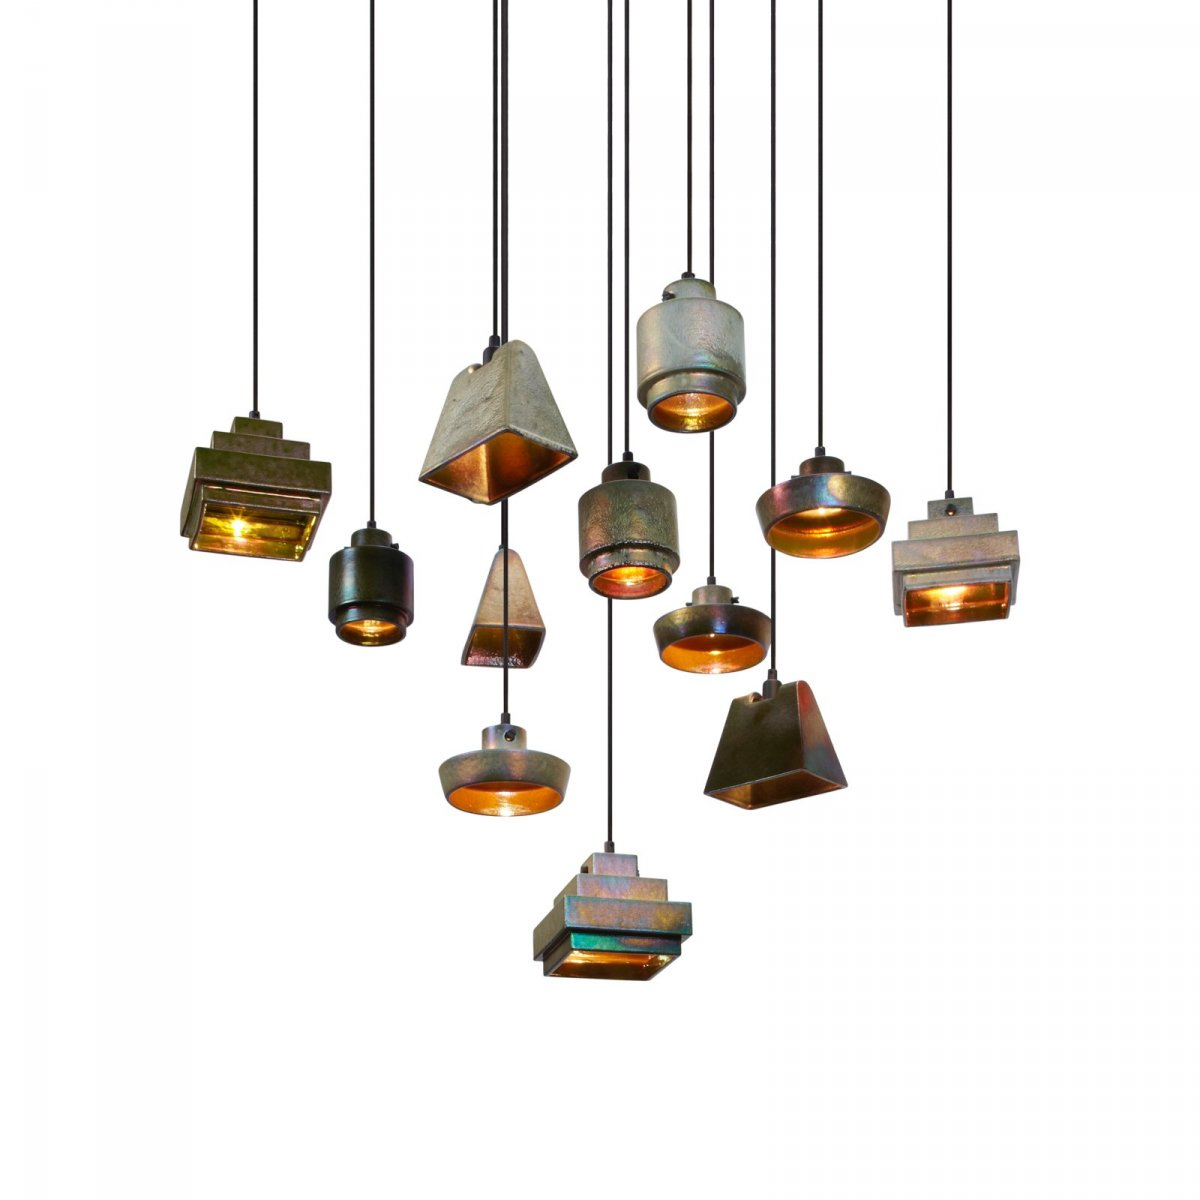 Lustre Light collection.